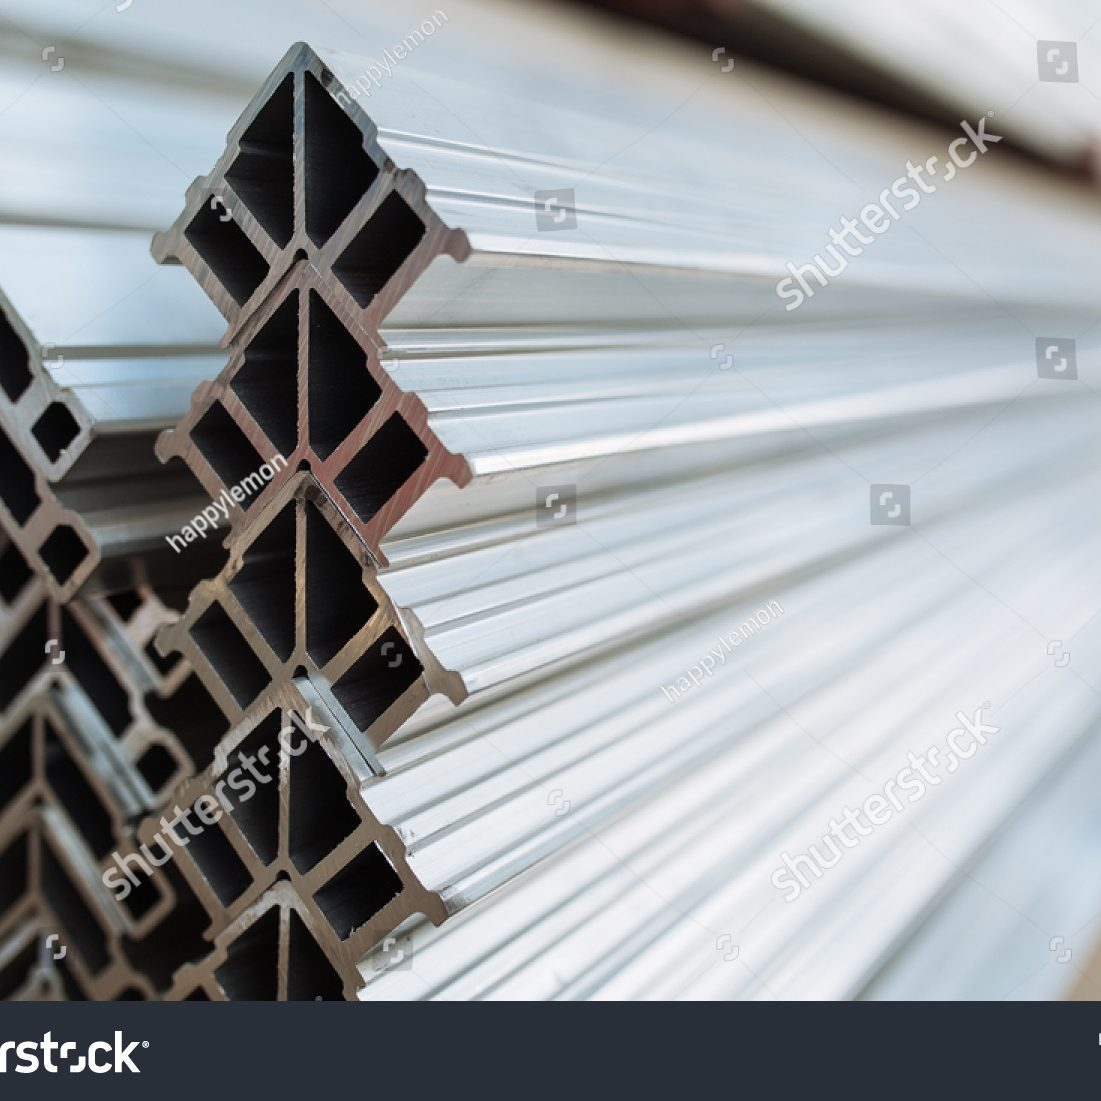 stock-photo-corner-cleat-used-for-connecting-window-head-jamb-and-sill-641819152